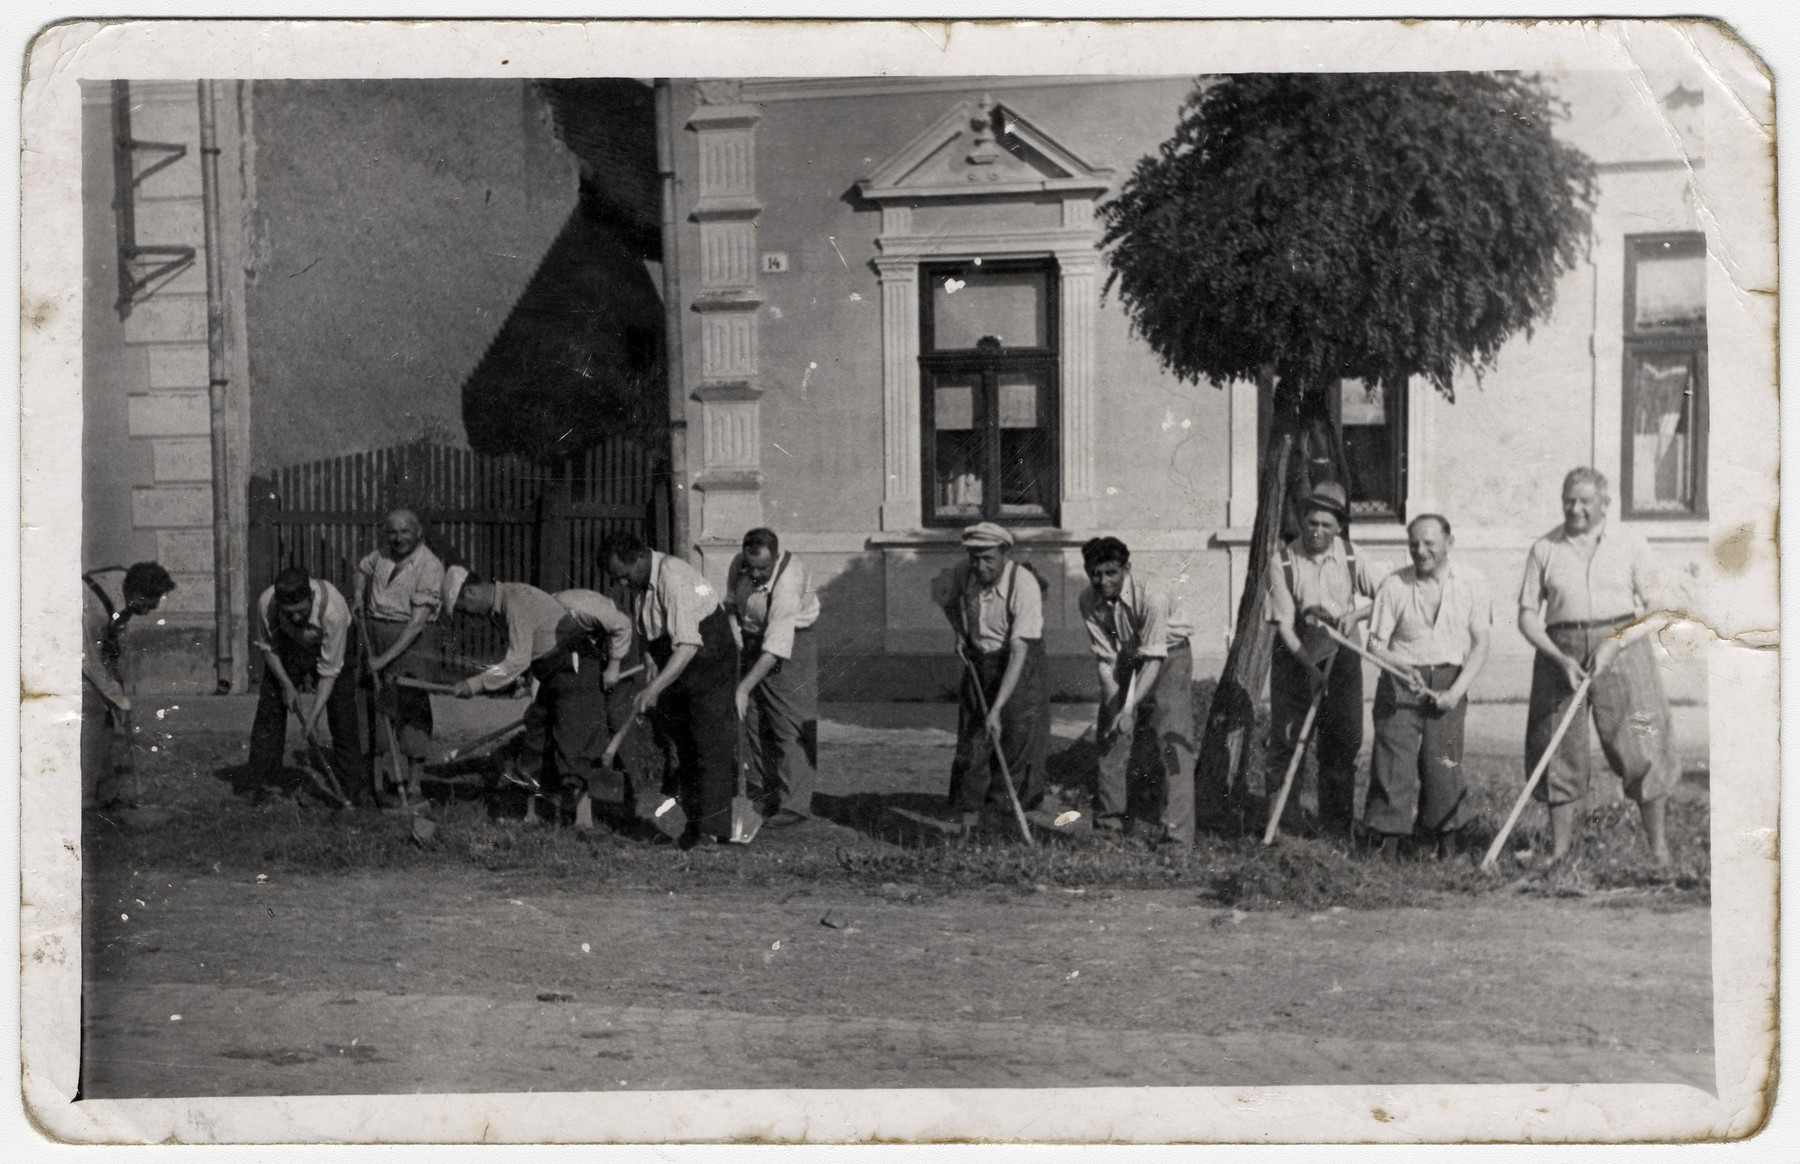 Jewish men perform forced labor digging on the side of a road in Debrecen.  Among those pictured in Mozes Loewinger.